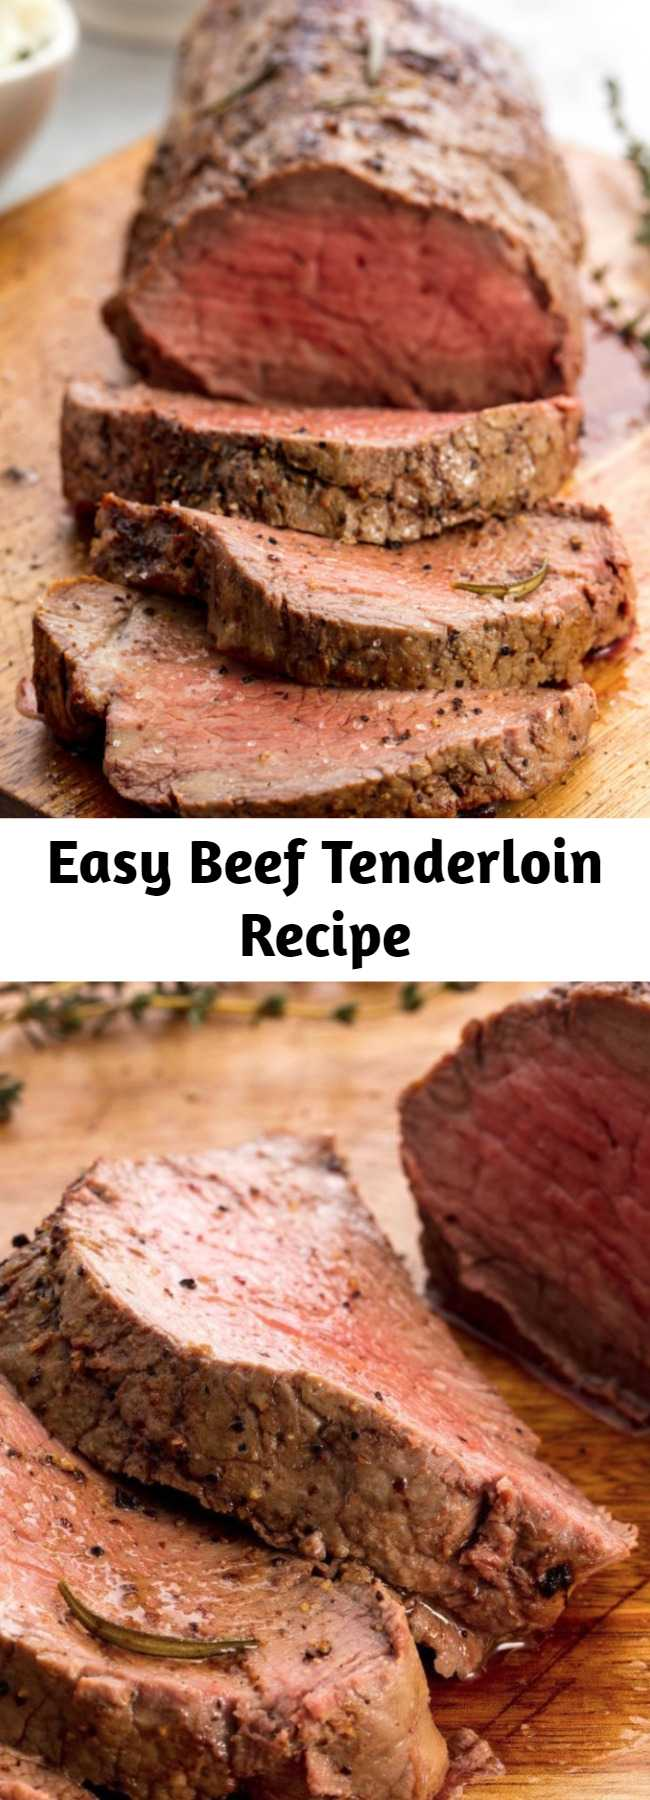 Easy Beef Tenderloin Recipe - Mother's Day deserves something special, like this perfect beef tenderloin. This easy Roast Beef Tenderloin will get you through the holidays. #recipe #easy #easyrecipes #beef #tenderloin #holiday #holidayrecipes #dinner #dinnerrecipes #meat #meatrecipes